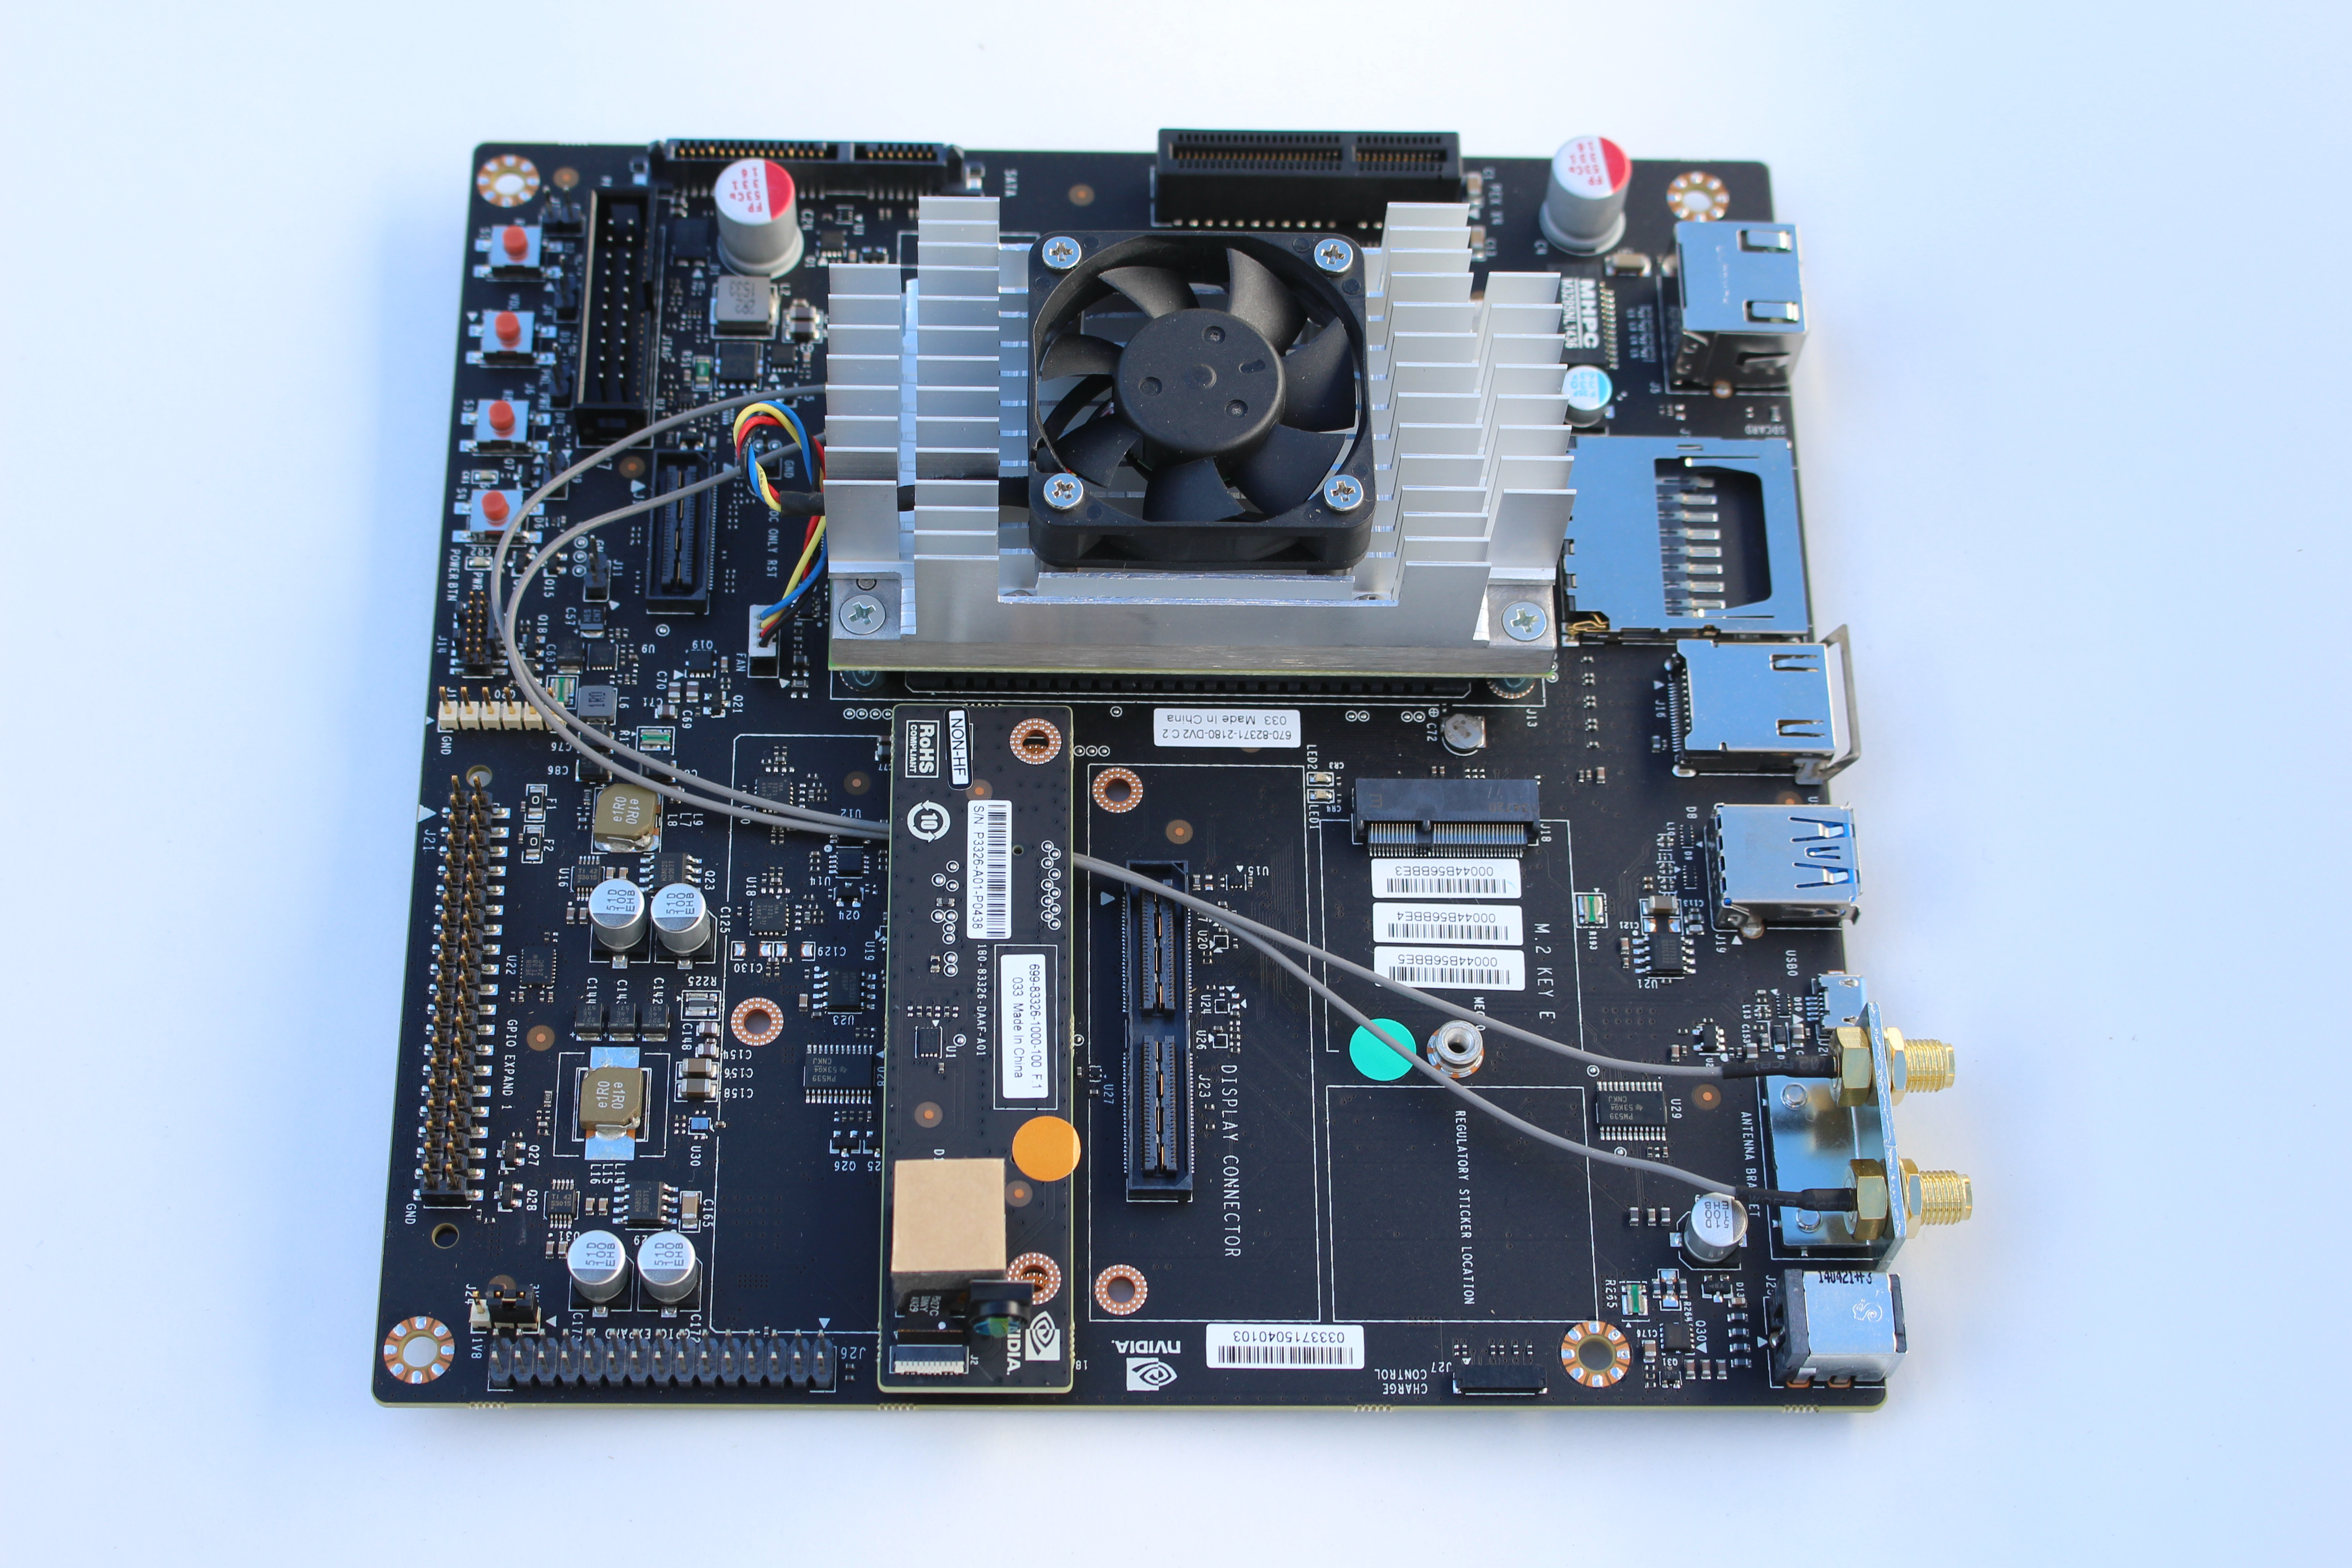 Jetson_TX1_Board_Large – CNXSoft – Embedded Systems News